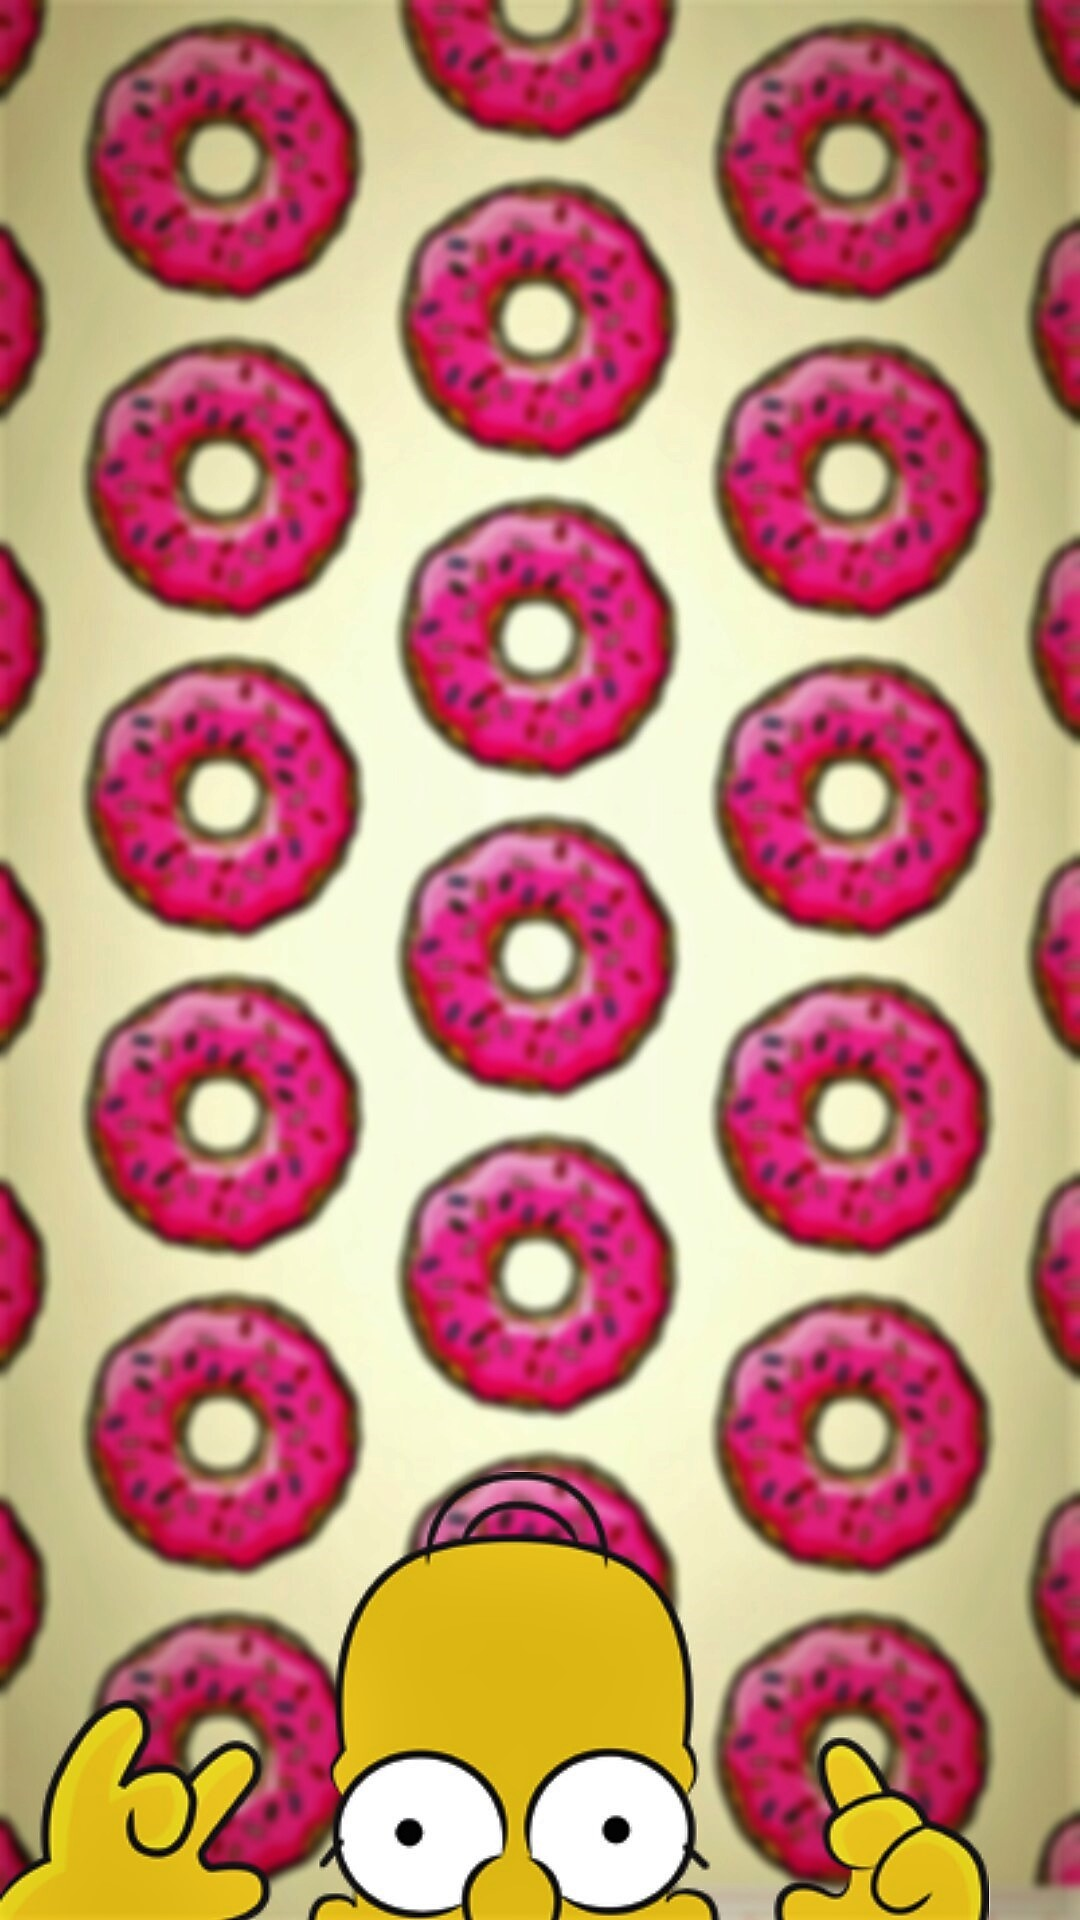 1080x1920 Homero donuts - Tap to see more of the cutest cartoon characters wallpapers!  - @